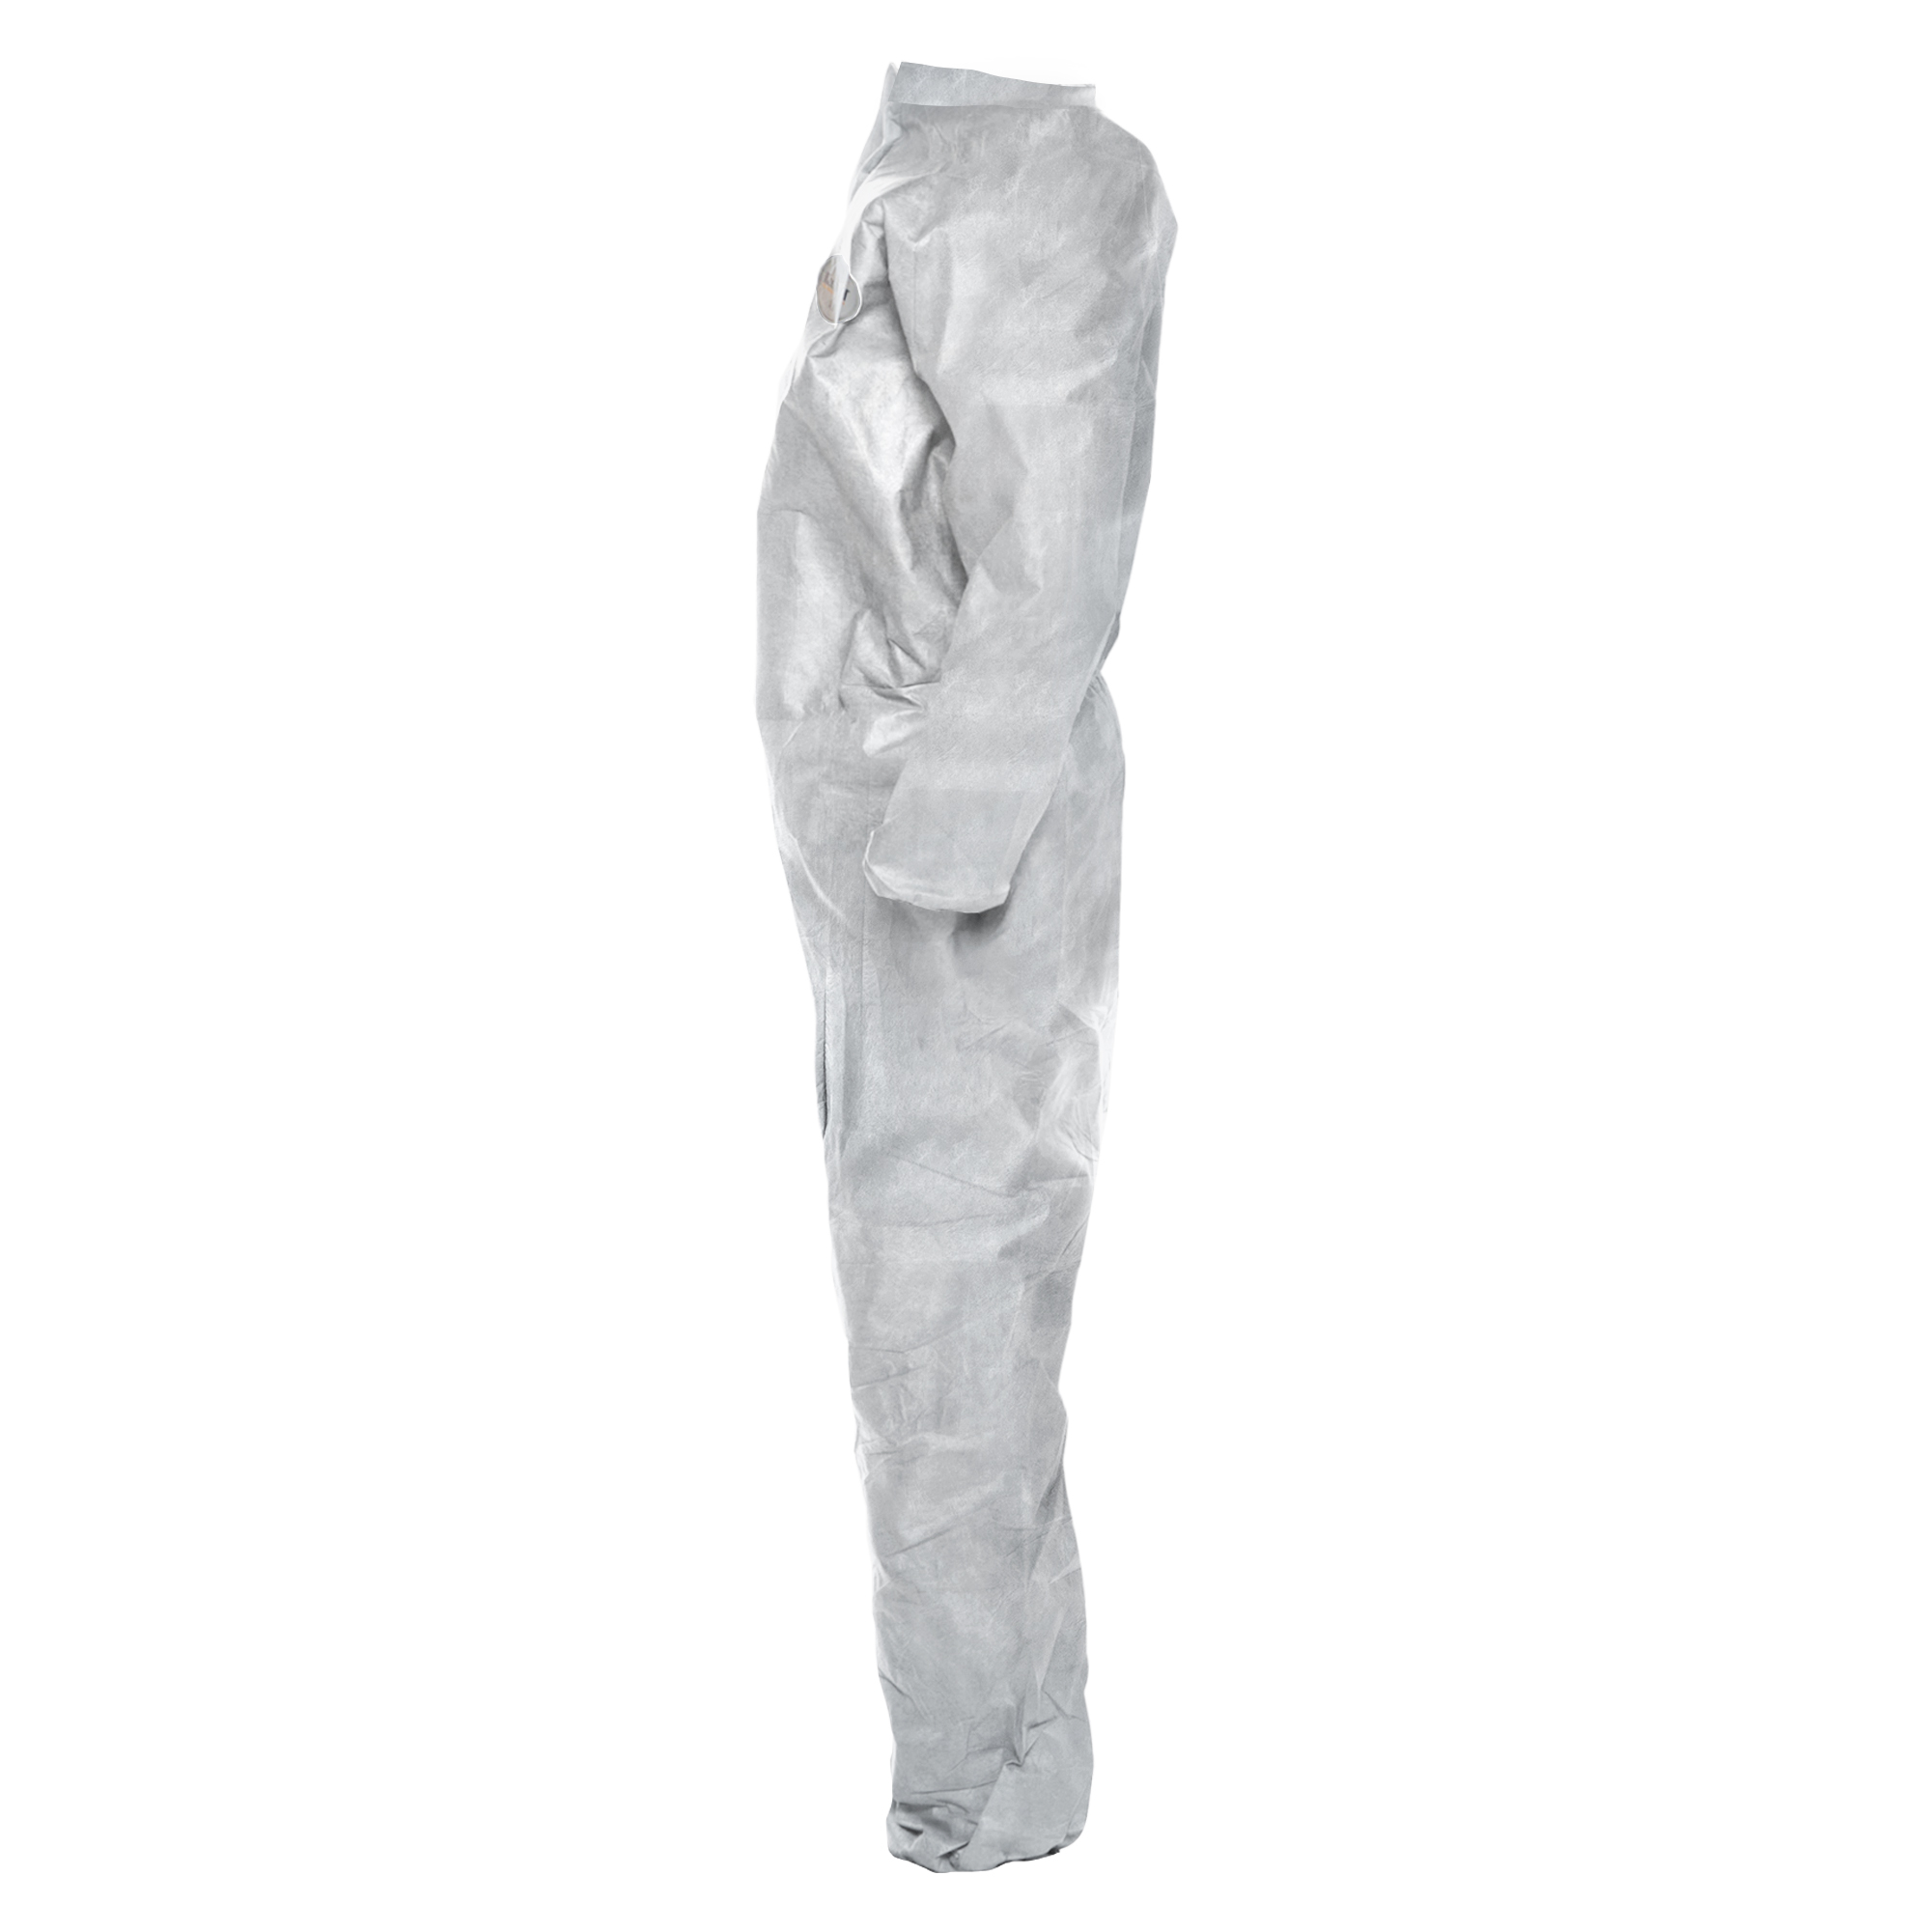 Picture of KleenGuard*    BP A20 Coveralls, MICROFORCE Barrier SMS Fabric, White, Large, 24/Carton (KCC49003)